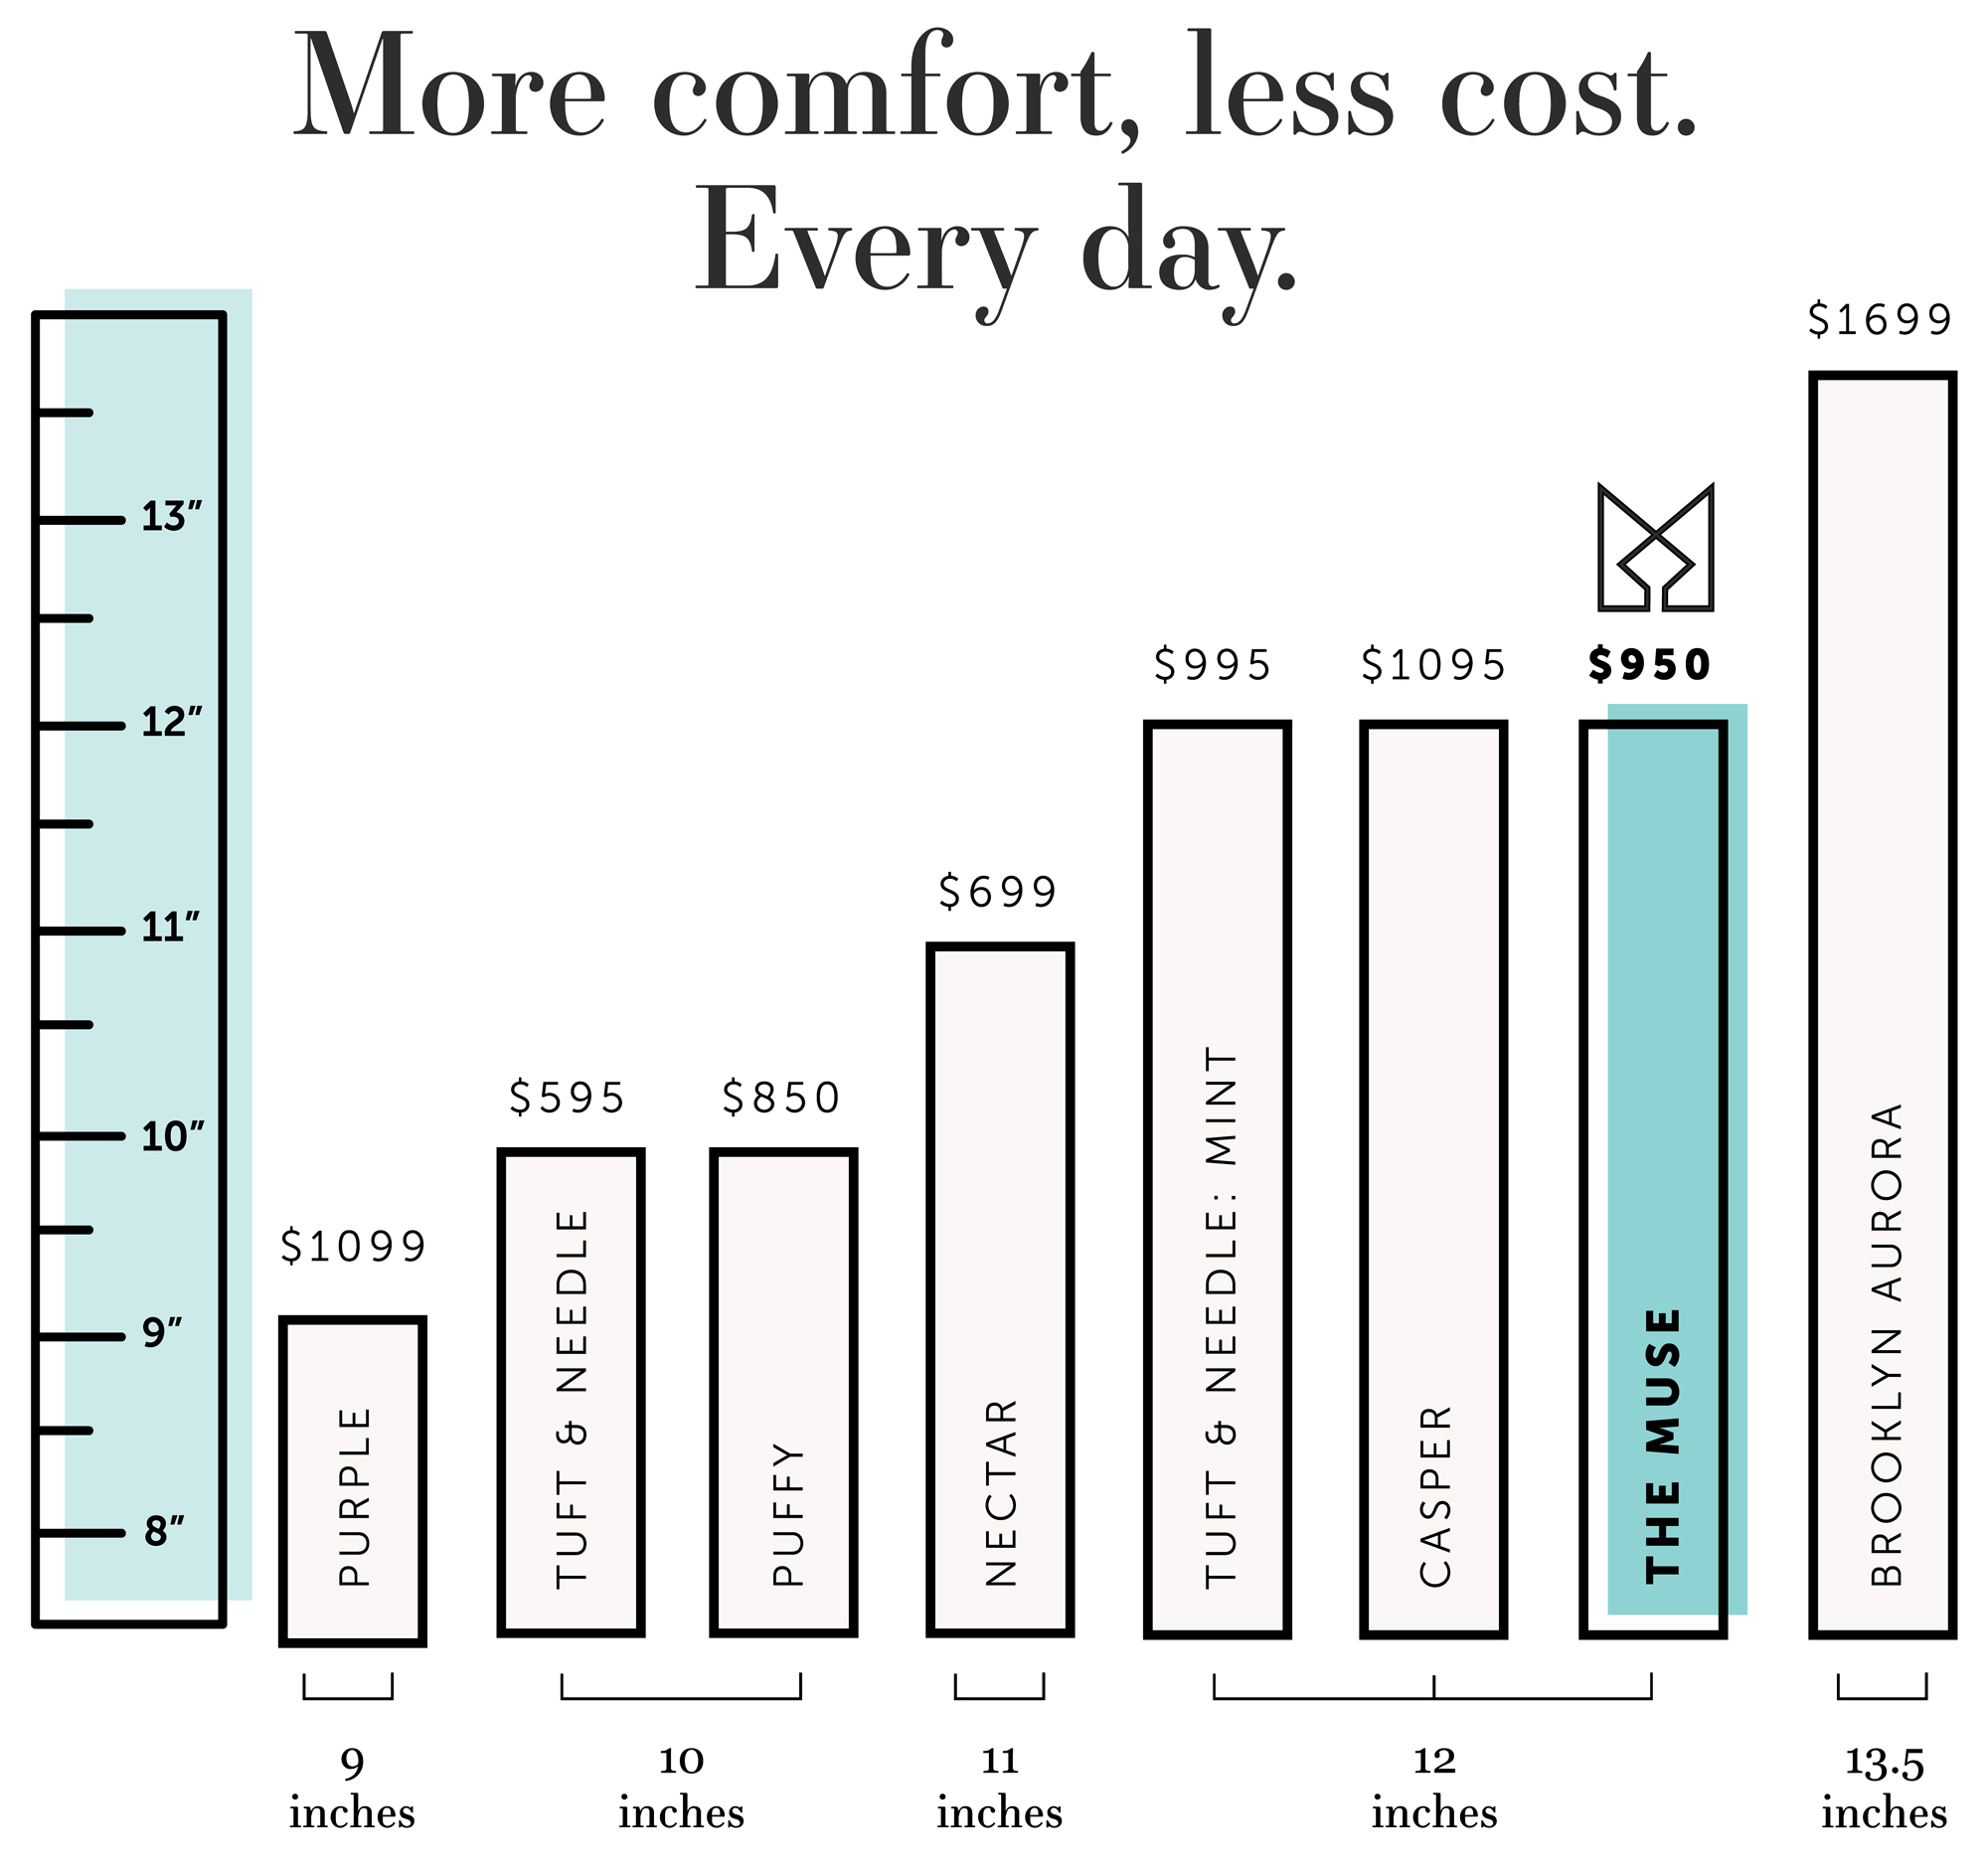 More Comfort Less Cost